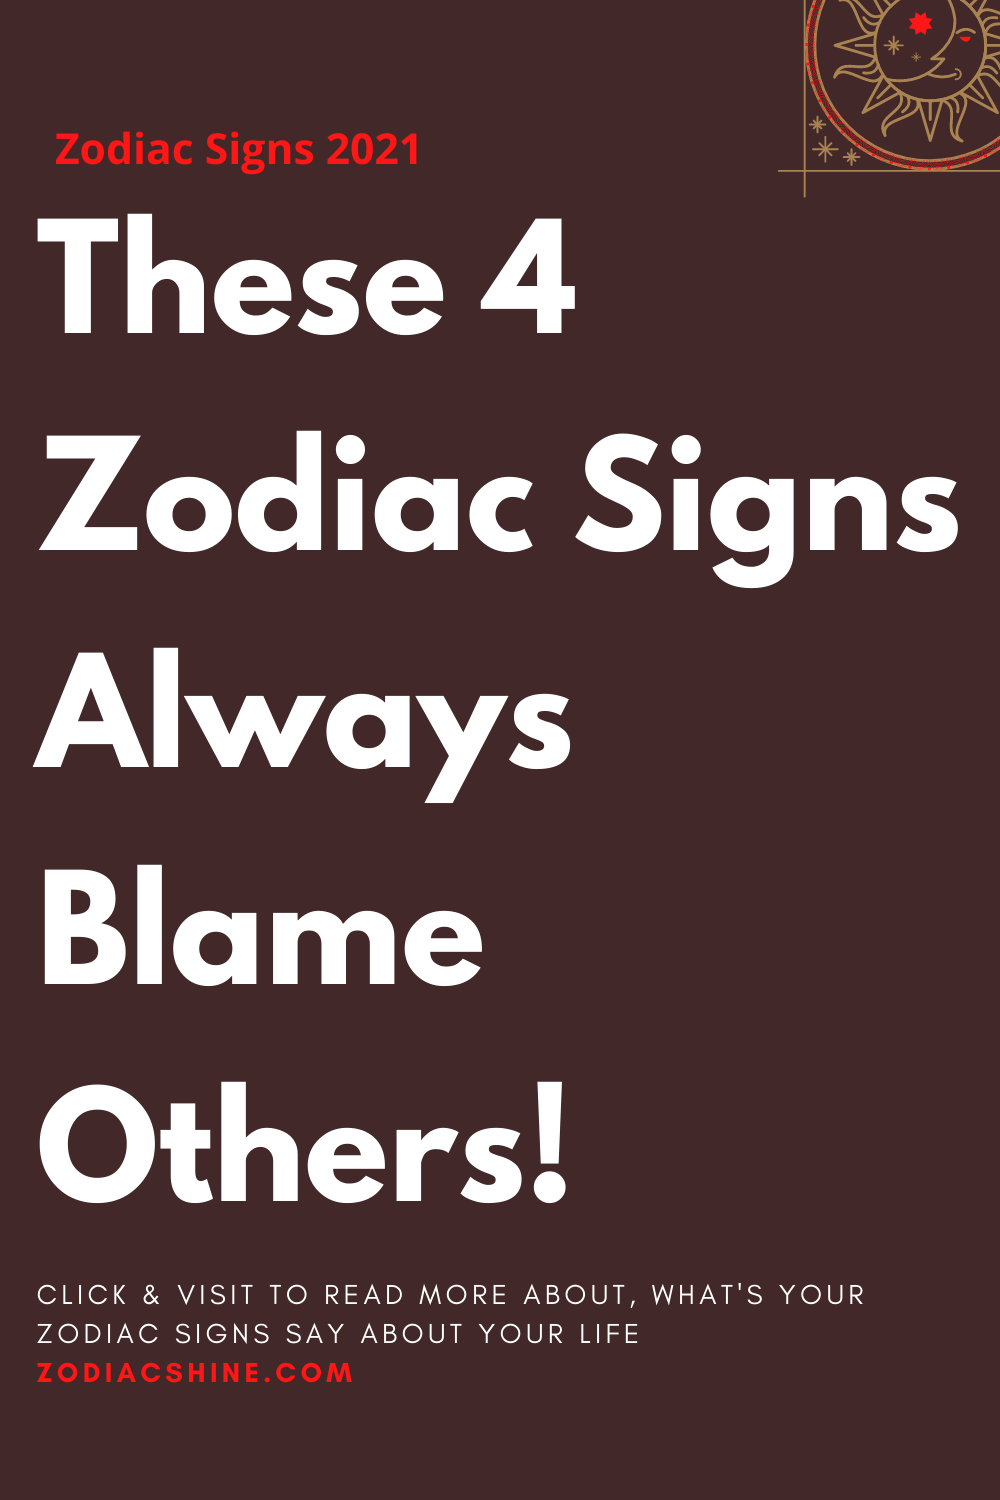 These 4 Zodiac Signs Always Blame Others!